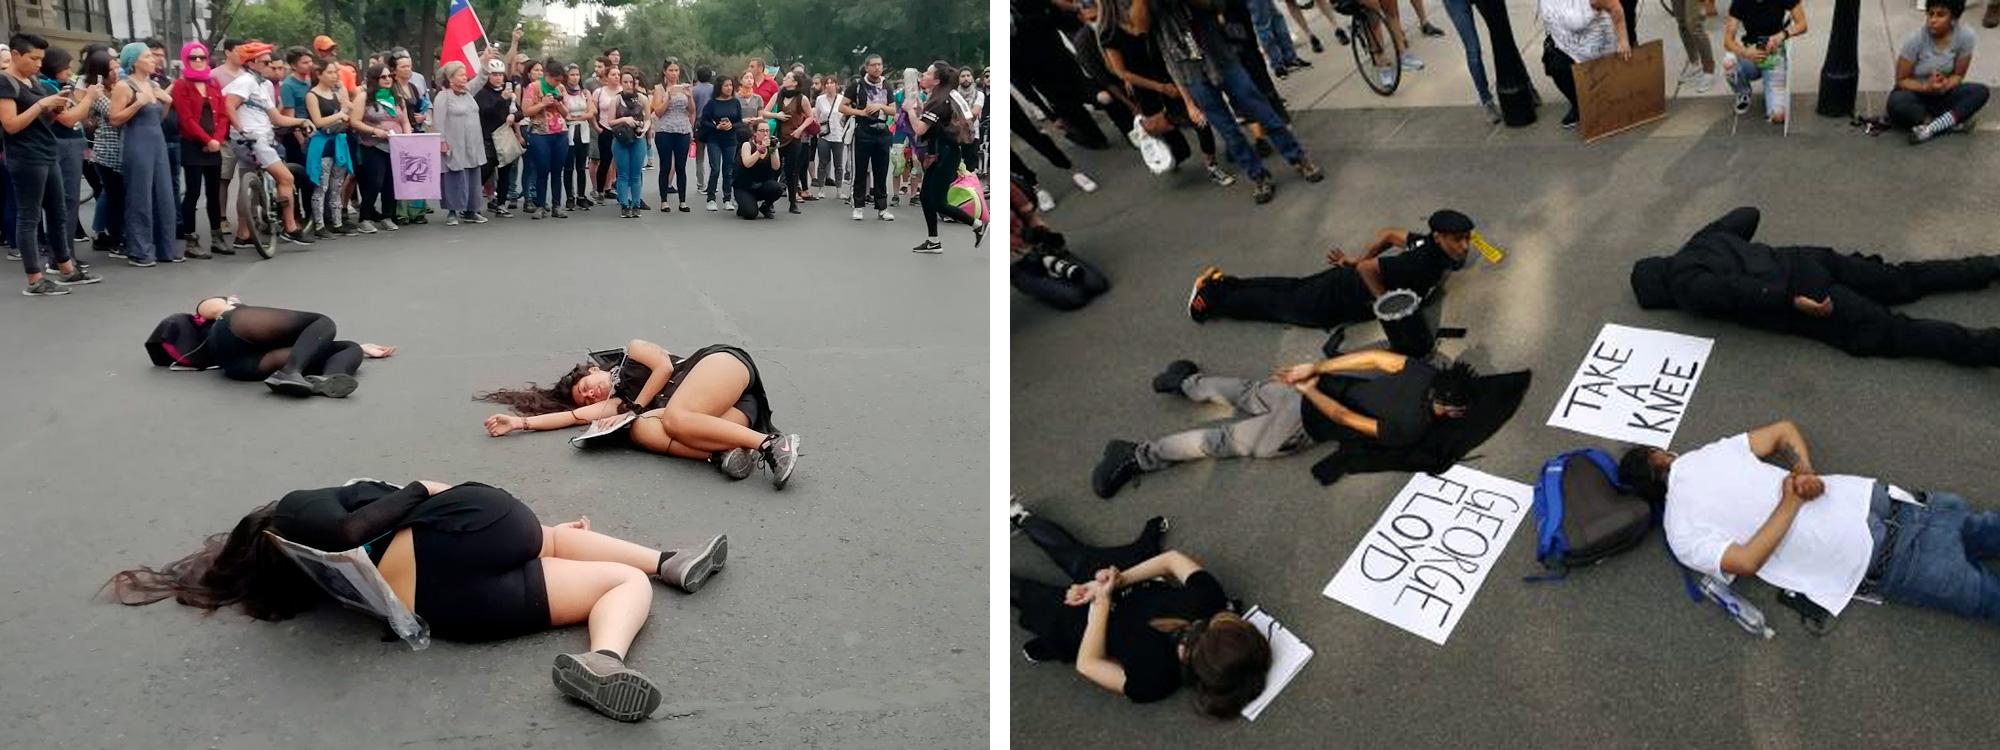 Two photos: girls on the ground in Chile, guys on the ground in the United States